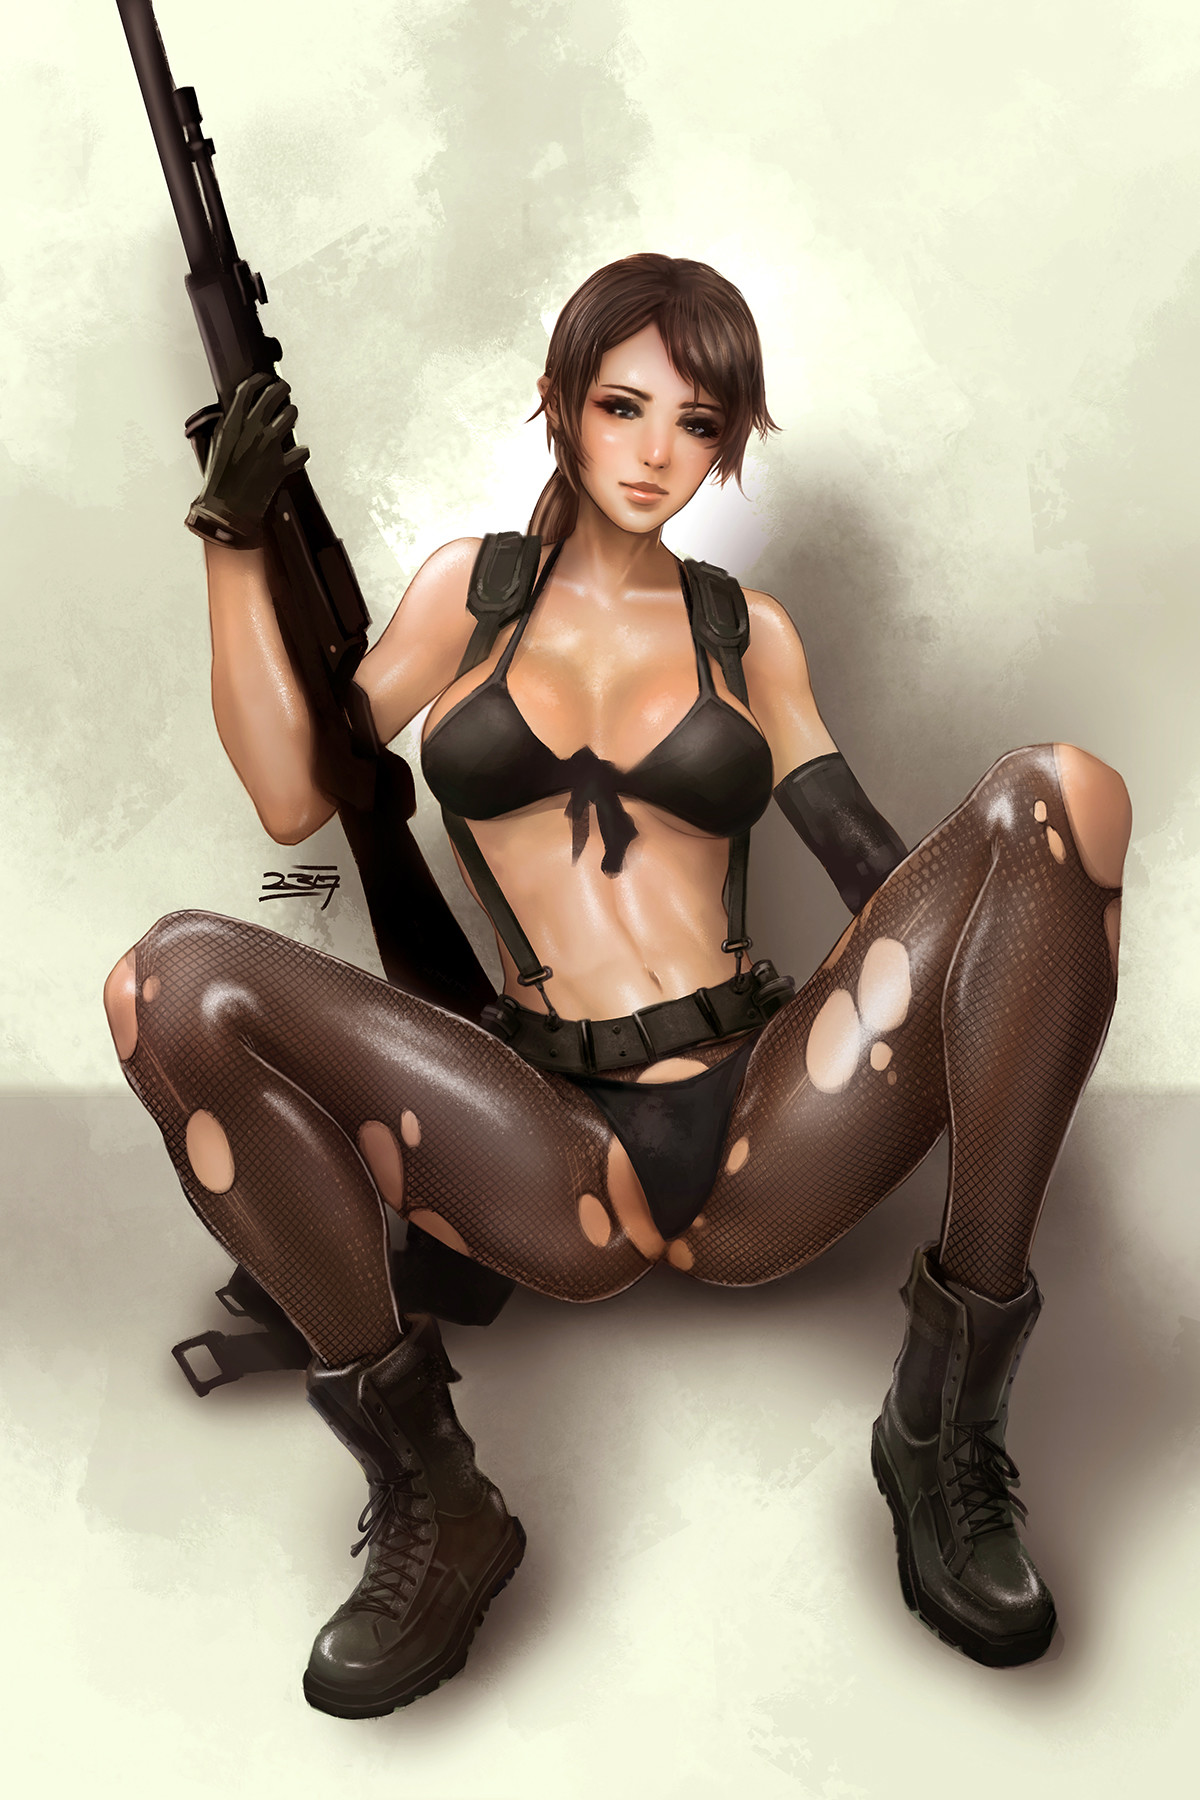 Rendy basuki shirow quiet resized 2